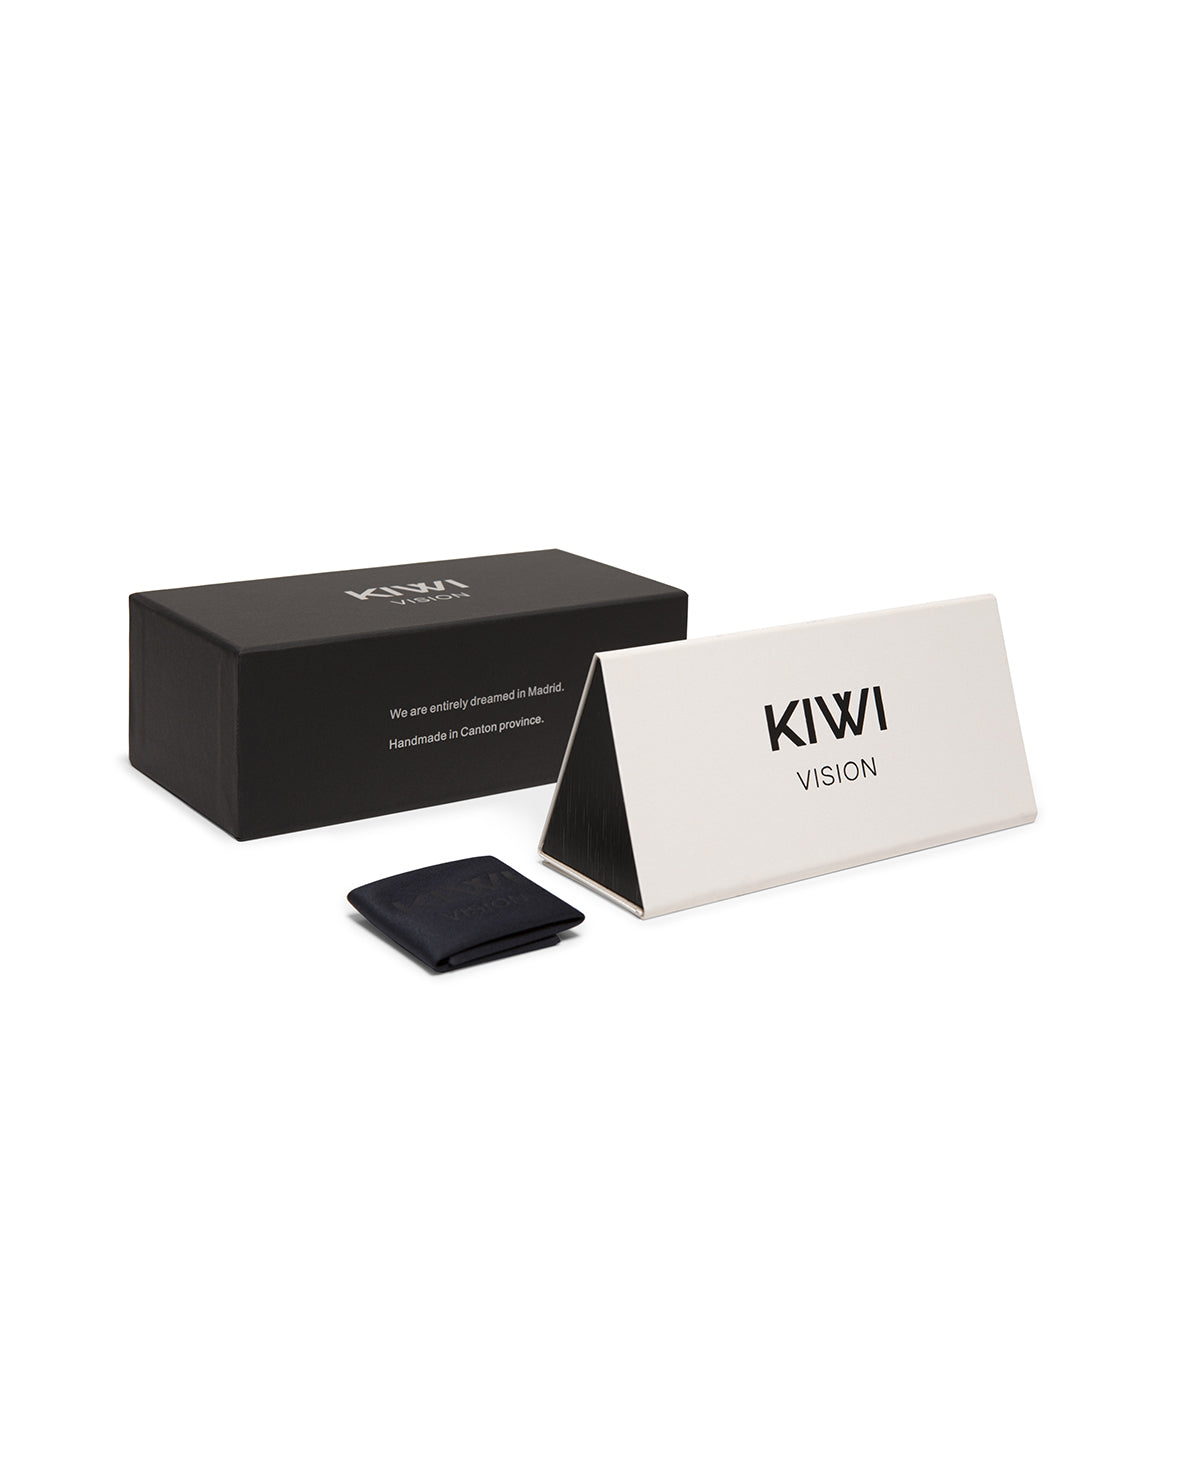 Kiwivision eyewear packaging, sunglasses